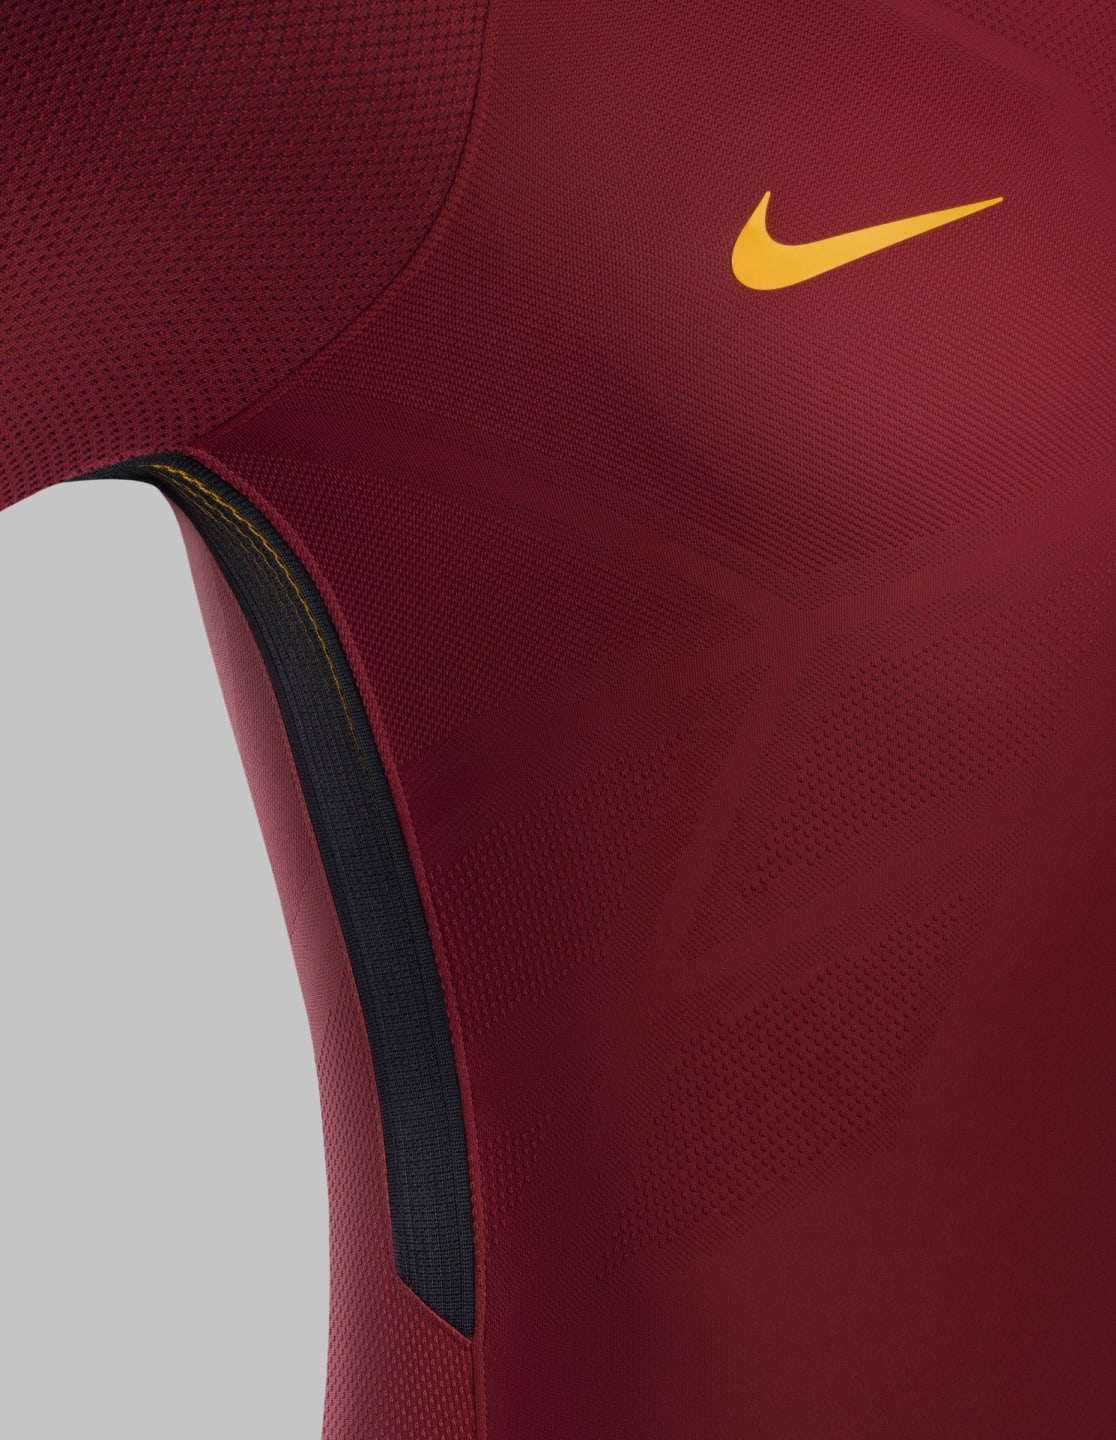 Buy AS Roma s new Nike home kit for the 2017-18 season now 813b7120c